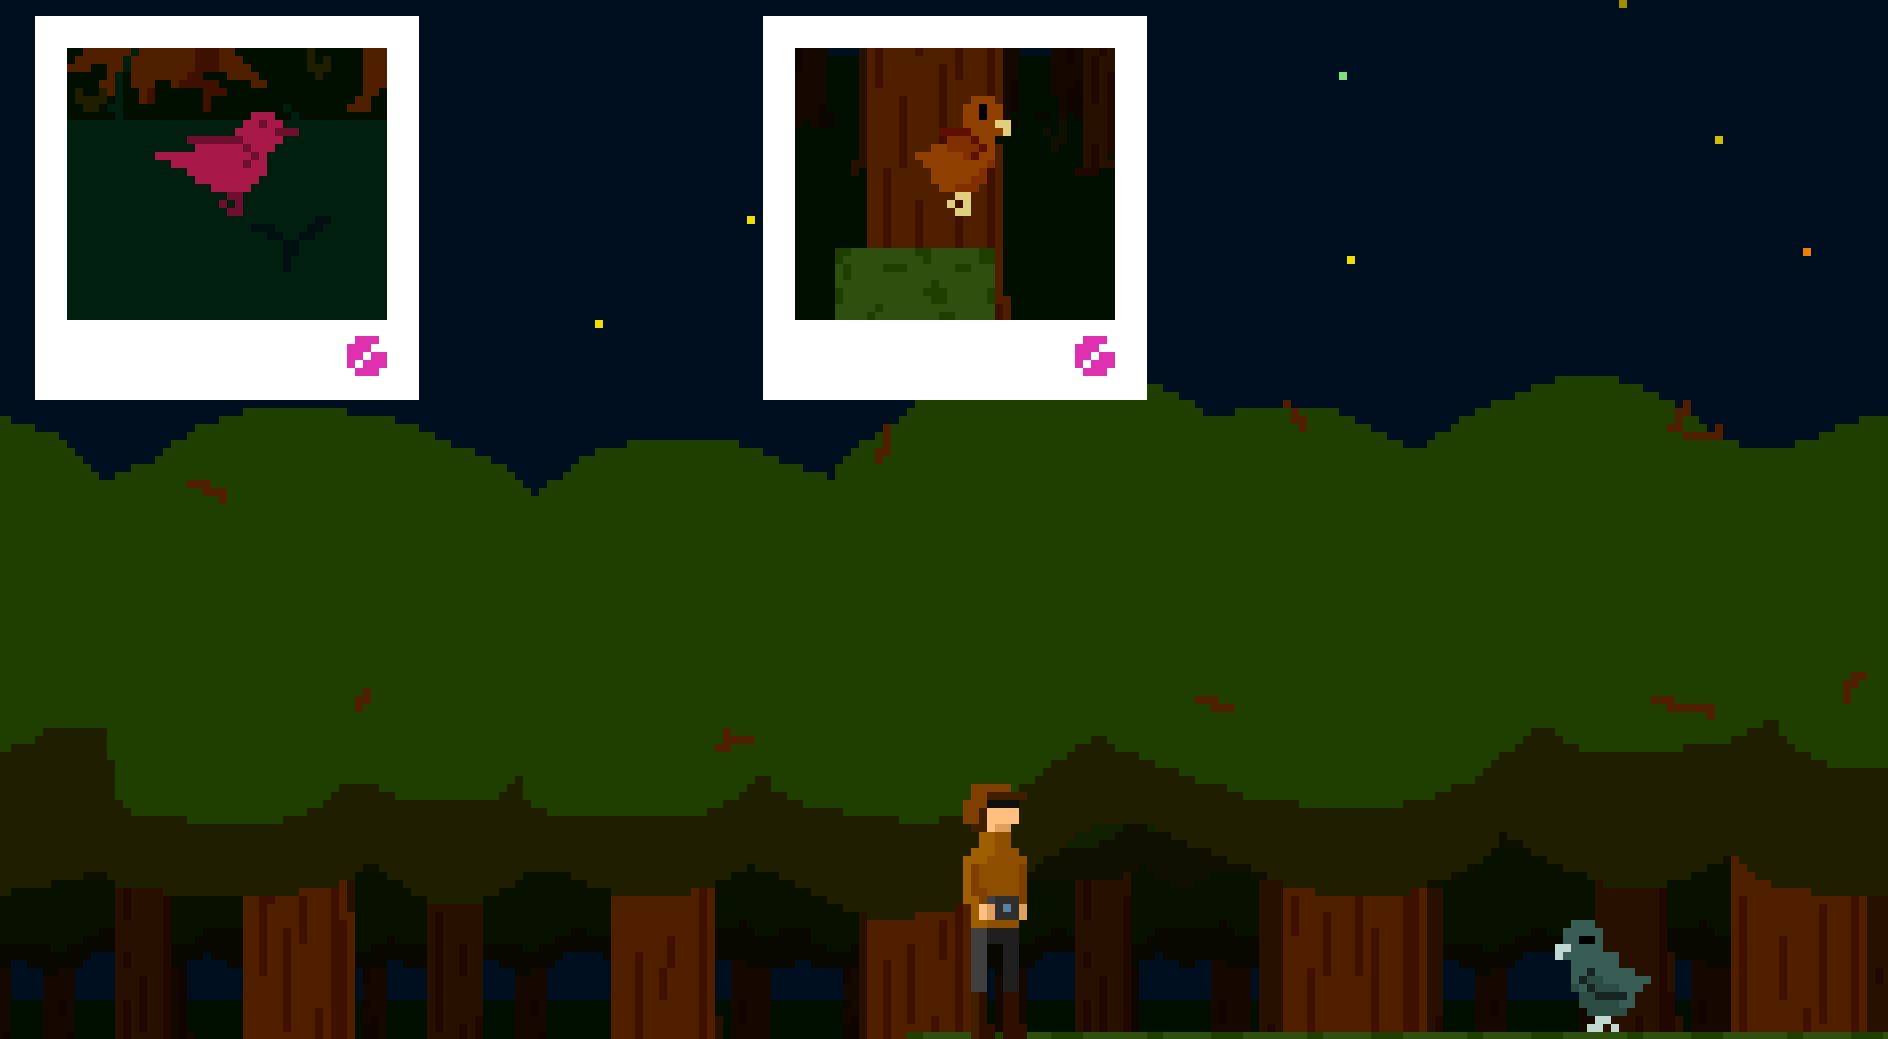 BIRDWATCHING - A birdwatching 2D platformer made in one day - a warmup exercise before a game jam and yet a personal favourite of mine.